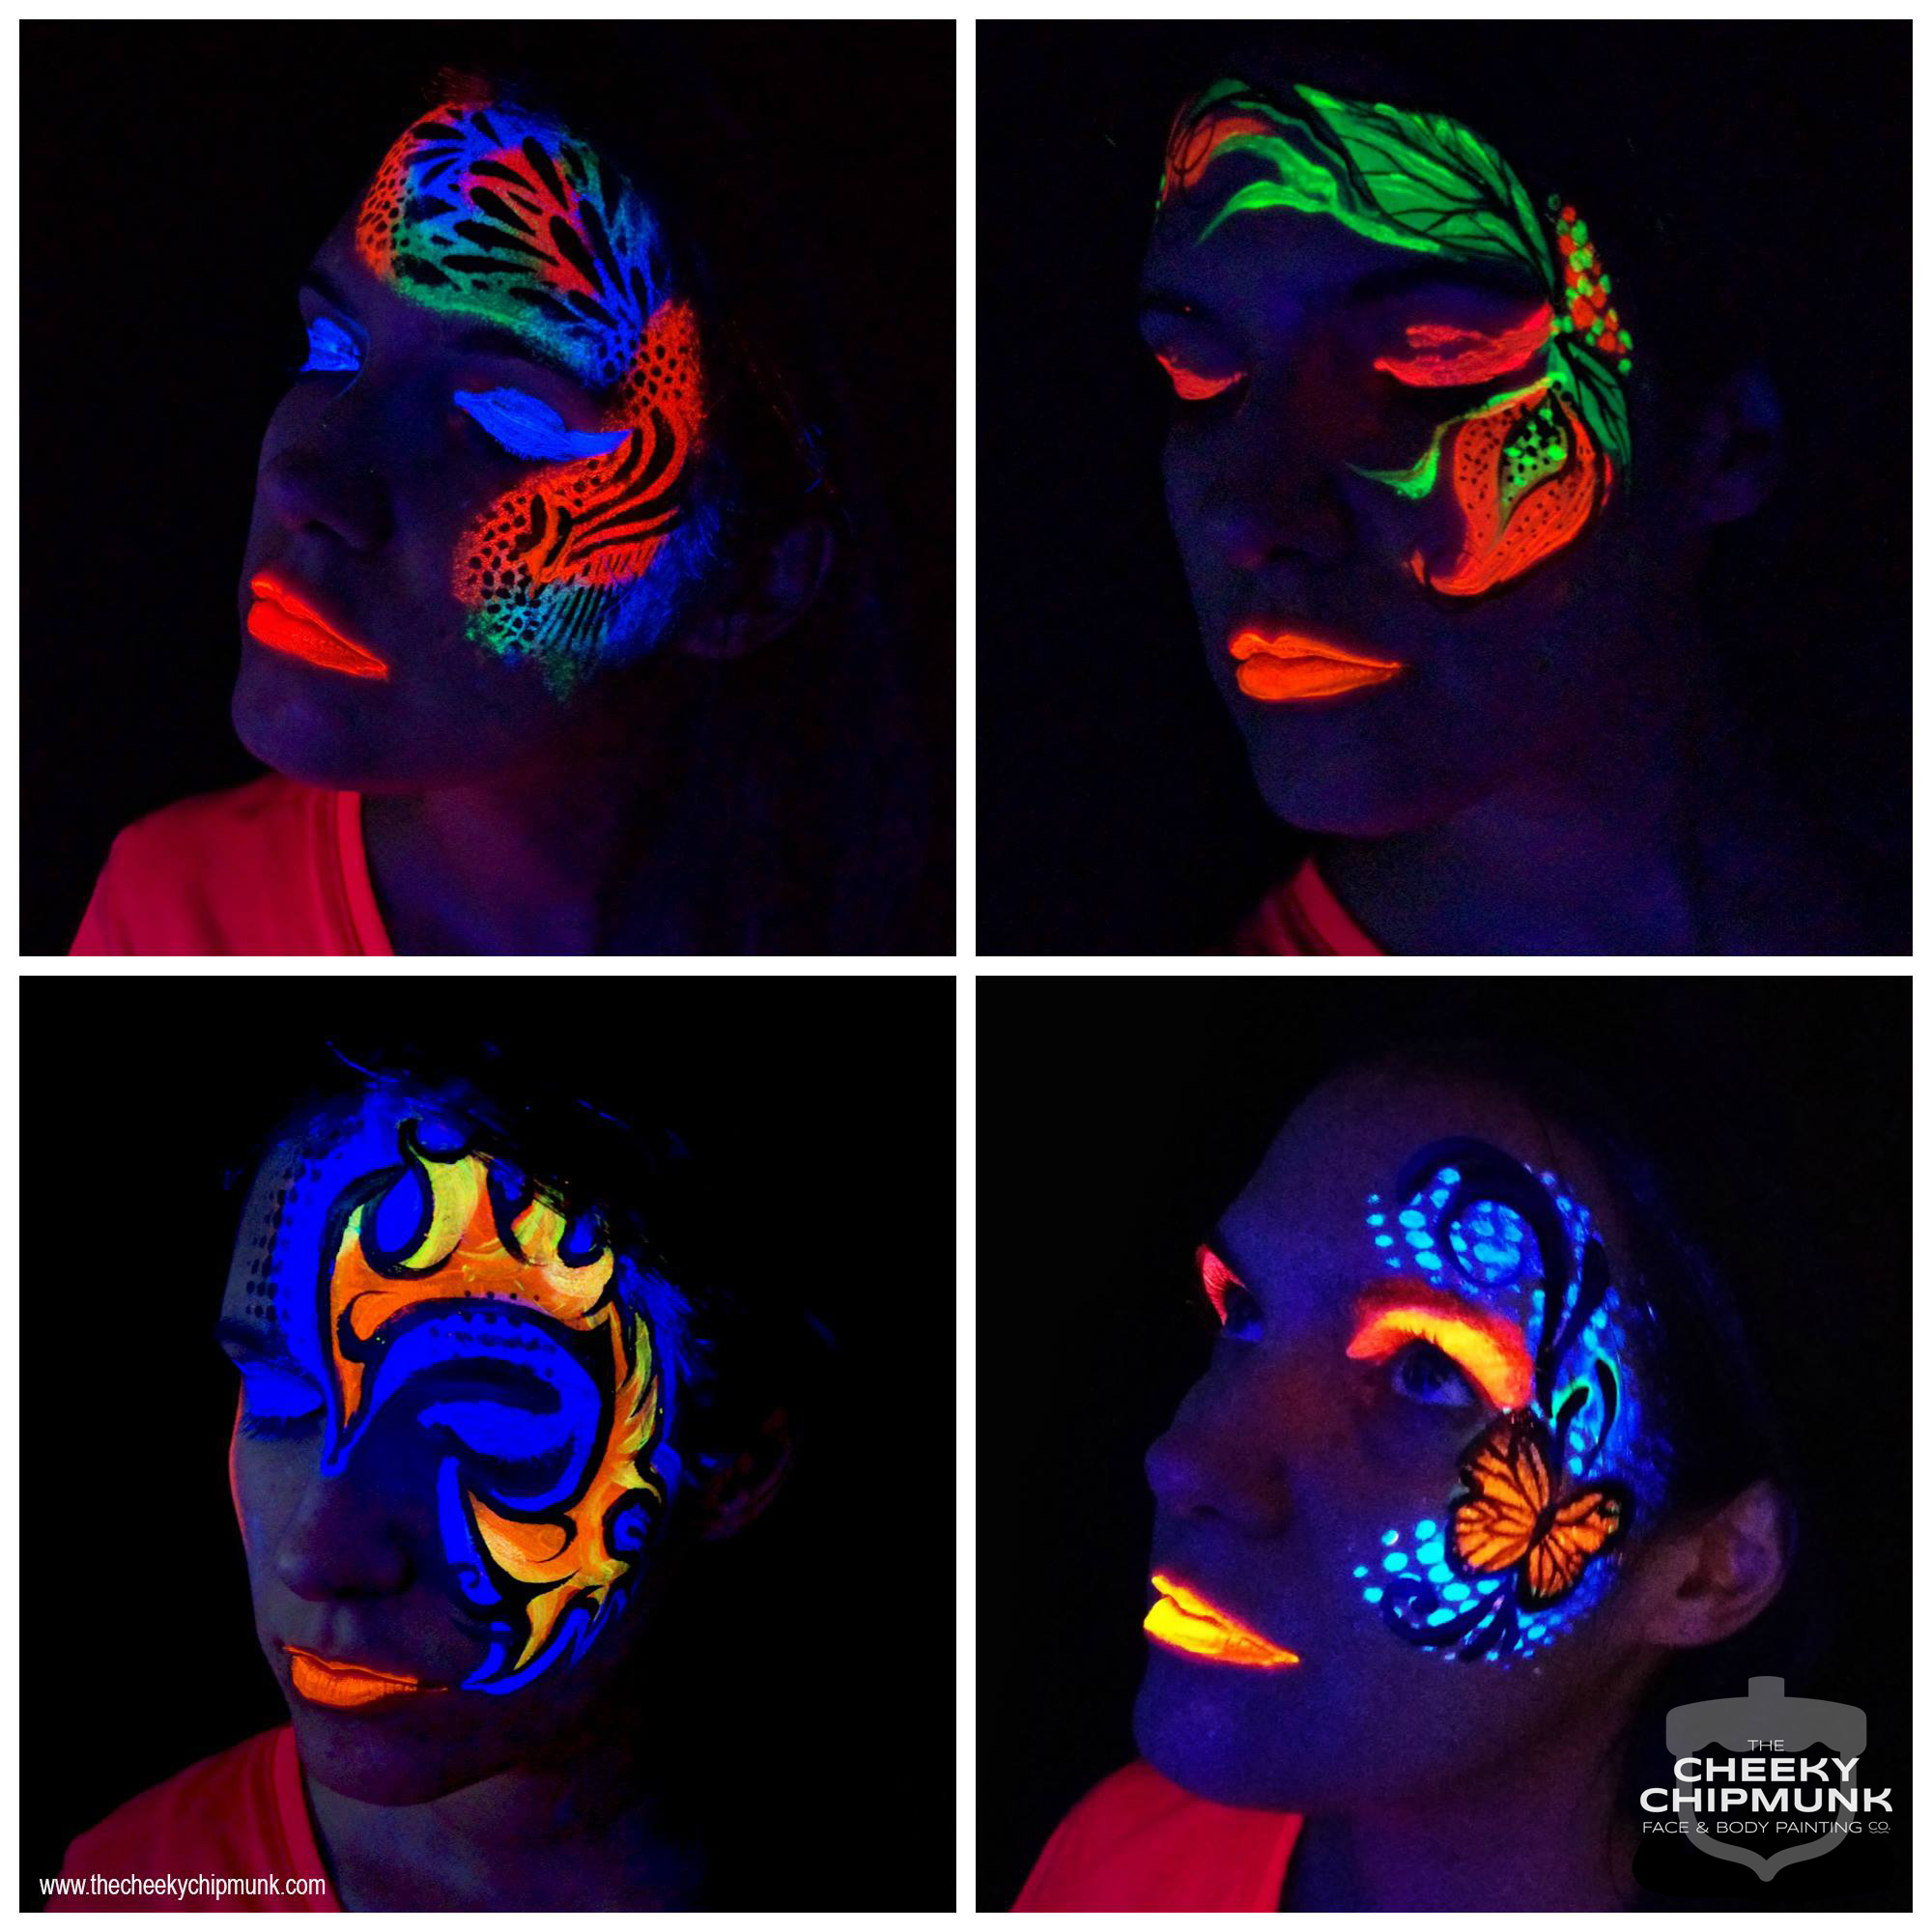 lenore-koppelman-the-cheeky-chipmunk-uv-face-body-painting-ultraviolet-black-light-blacklight-glowing-glow-rainbow-jessica-mellow-neon-nyc.jpg